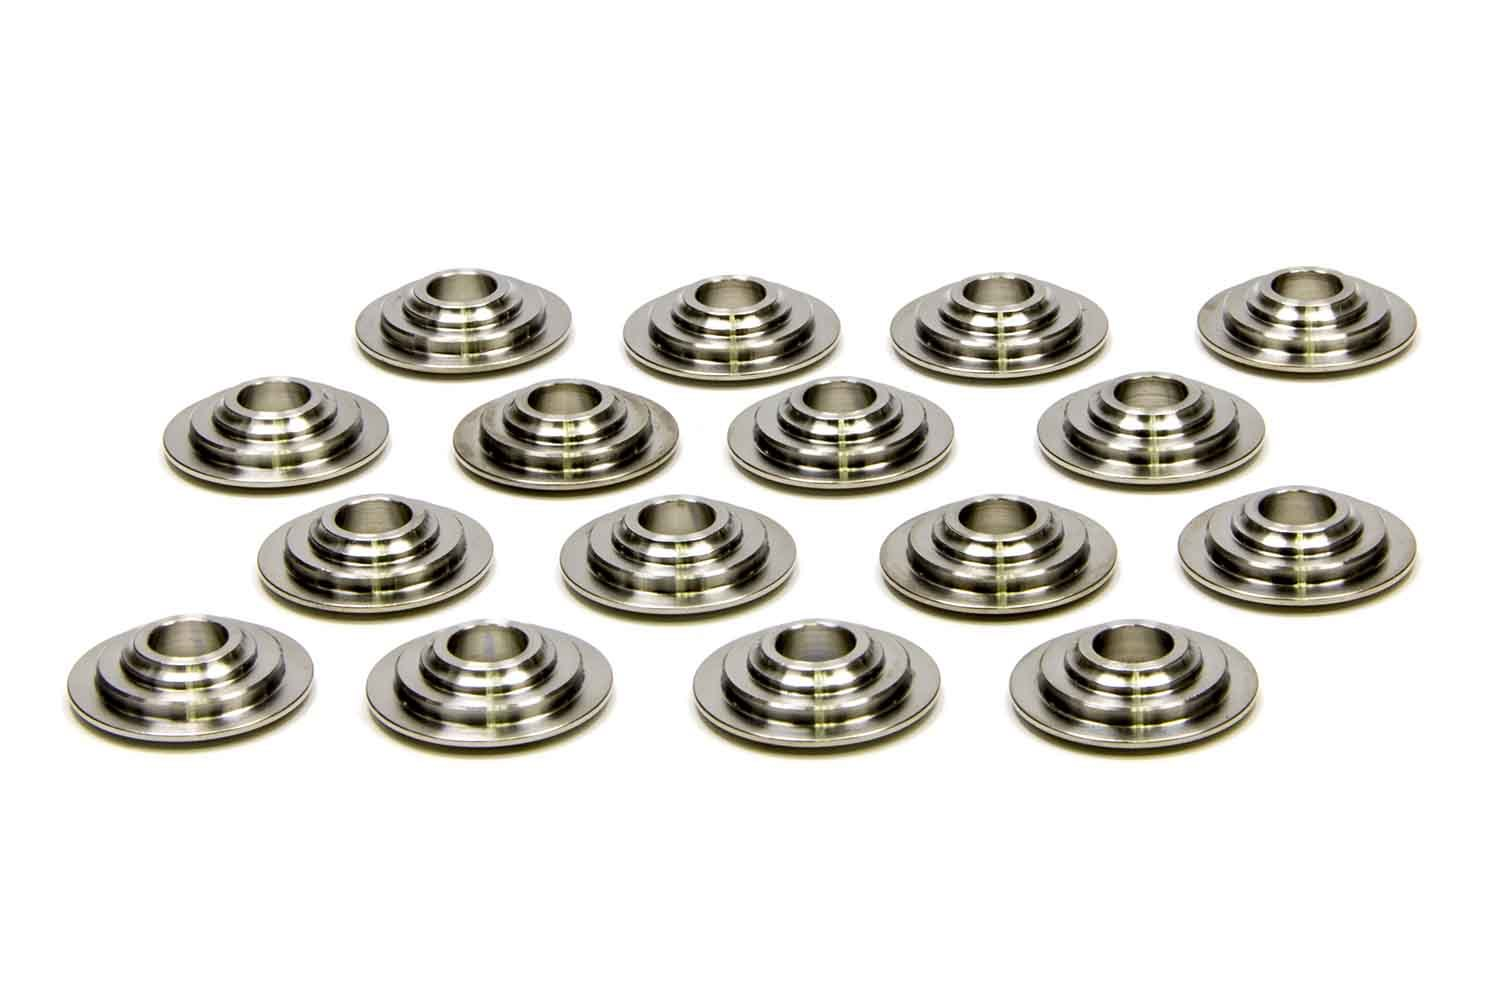 PAC Racing Springs PAC-R435 Valve Spring Retainer, 400 Series, 7 Degree, 0.940 in / 0.680 in OD Steps, Dual Spring, Titanium, GM LS-Series, Set of 16